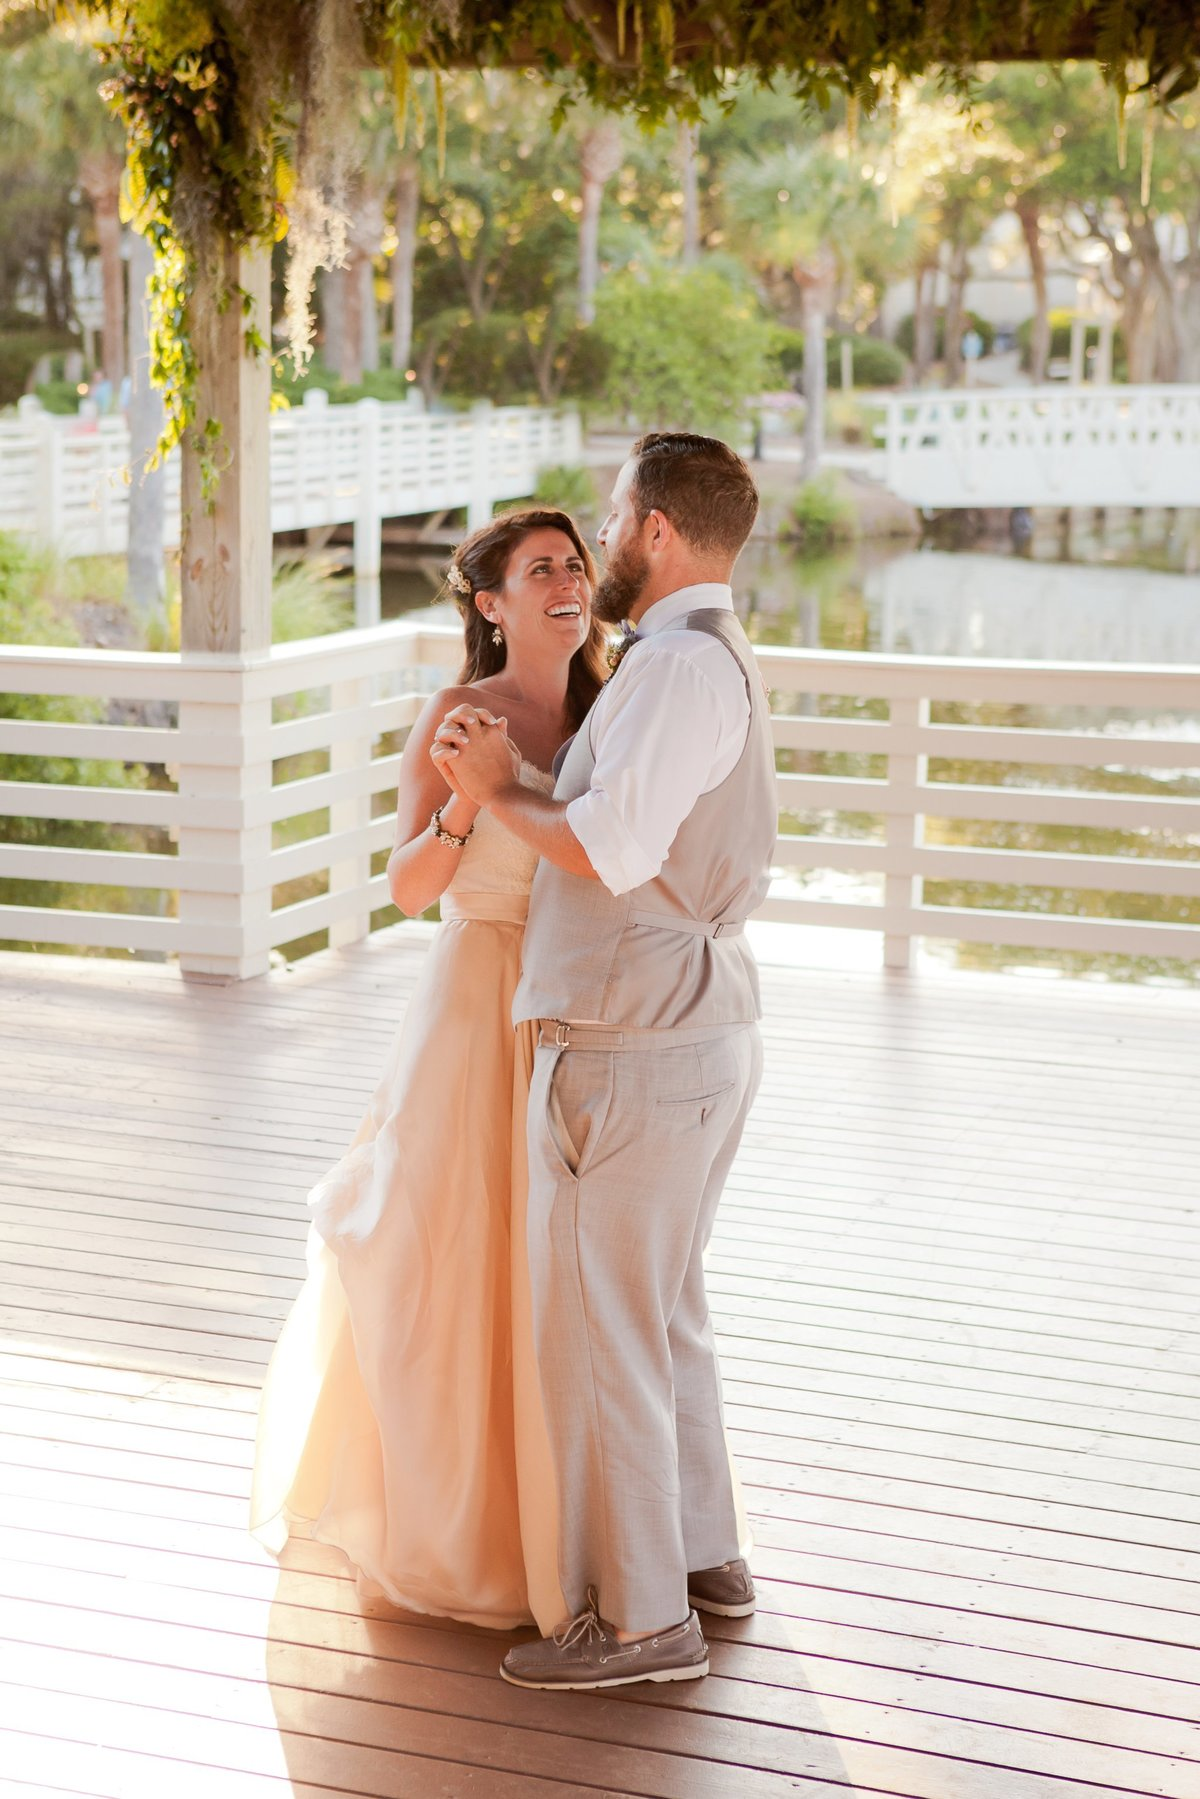 Hilton Head Island Weddings by Sylvia Schutz Photography at the Sonesta Hotel  www.sylviaschutzphotography.com